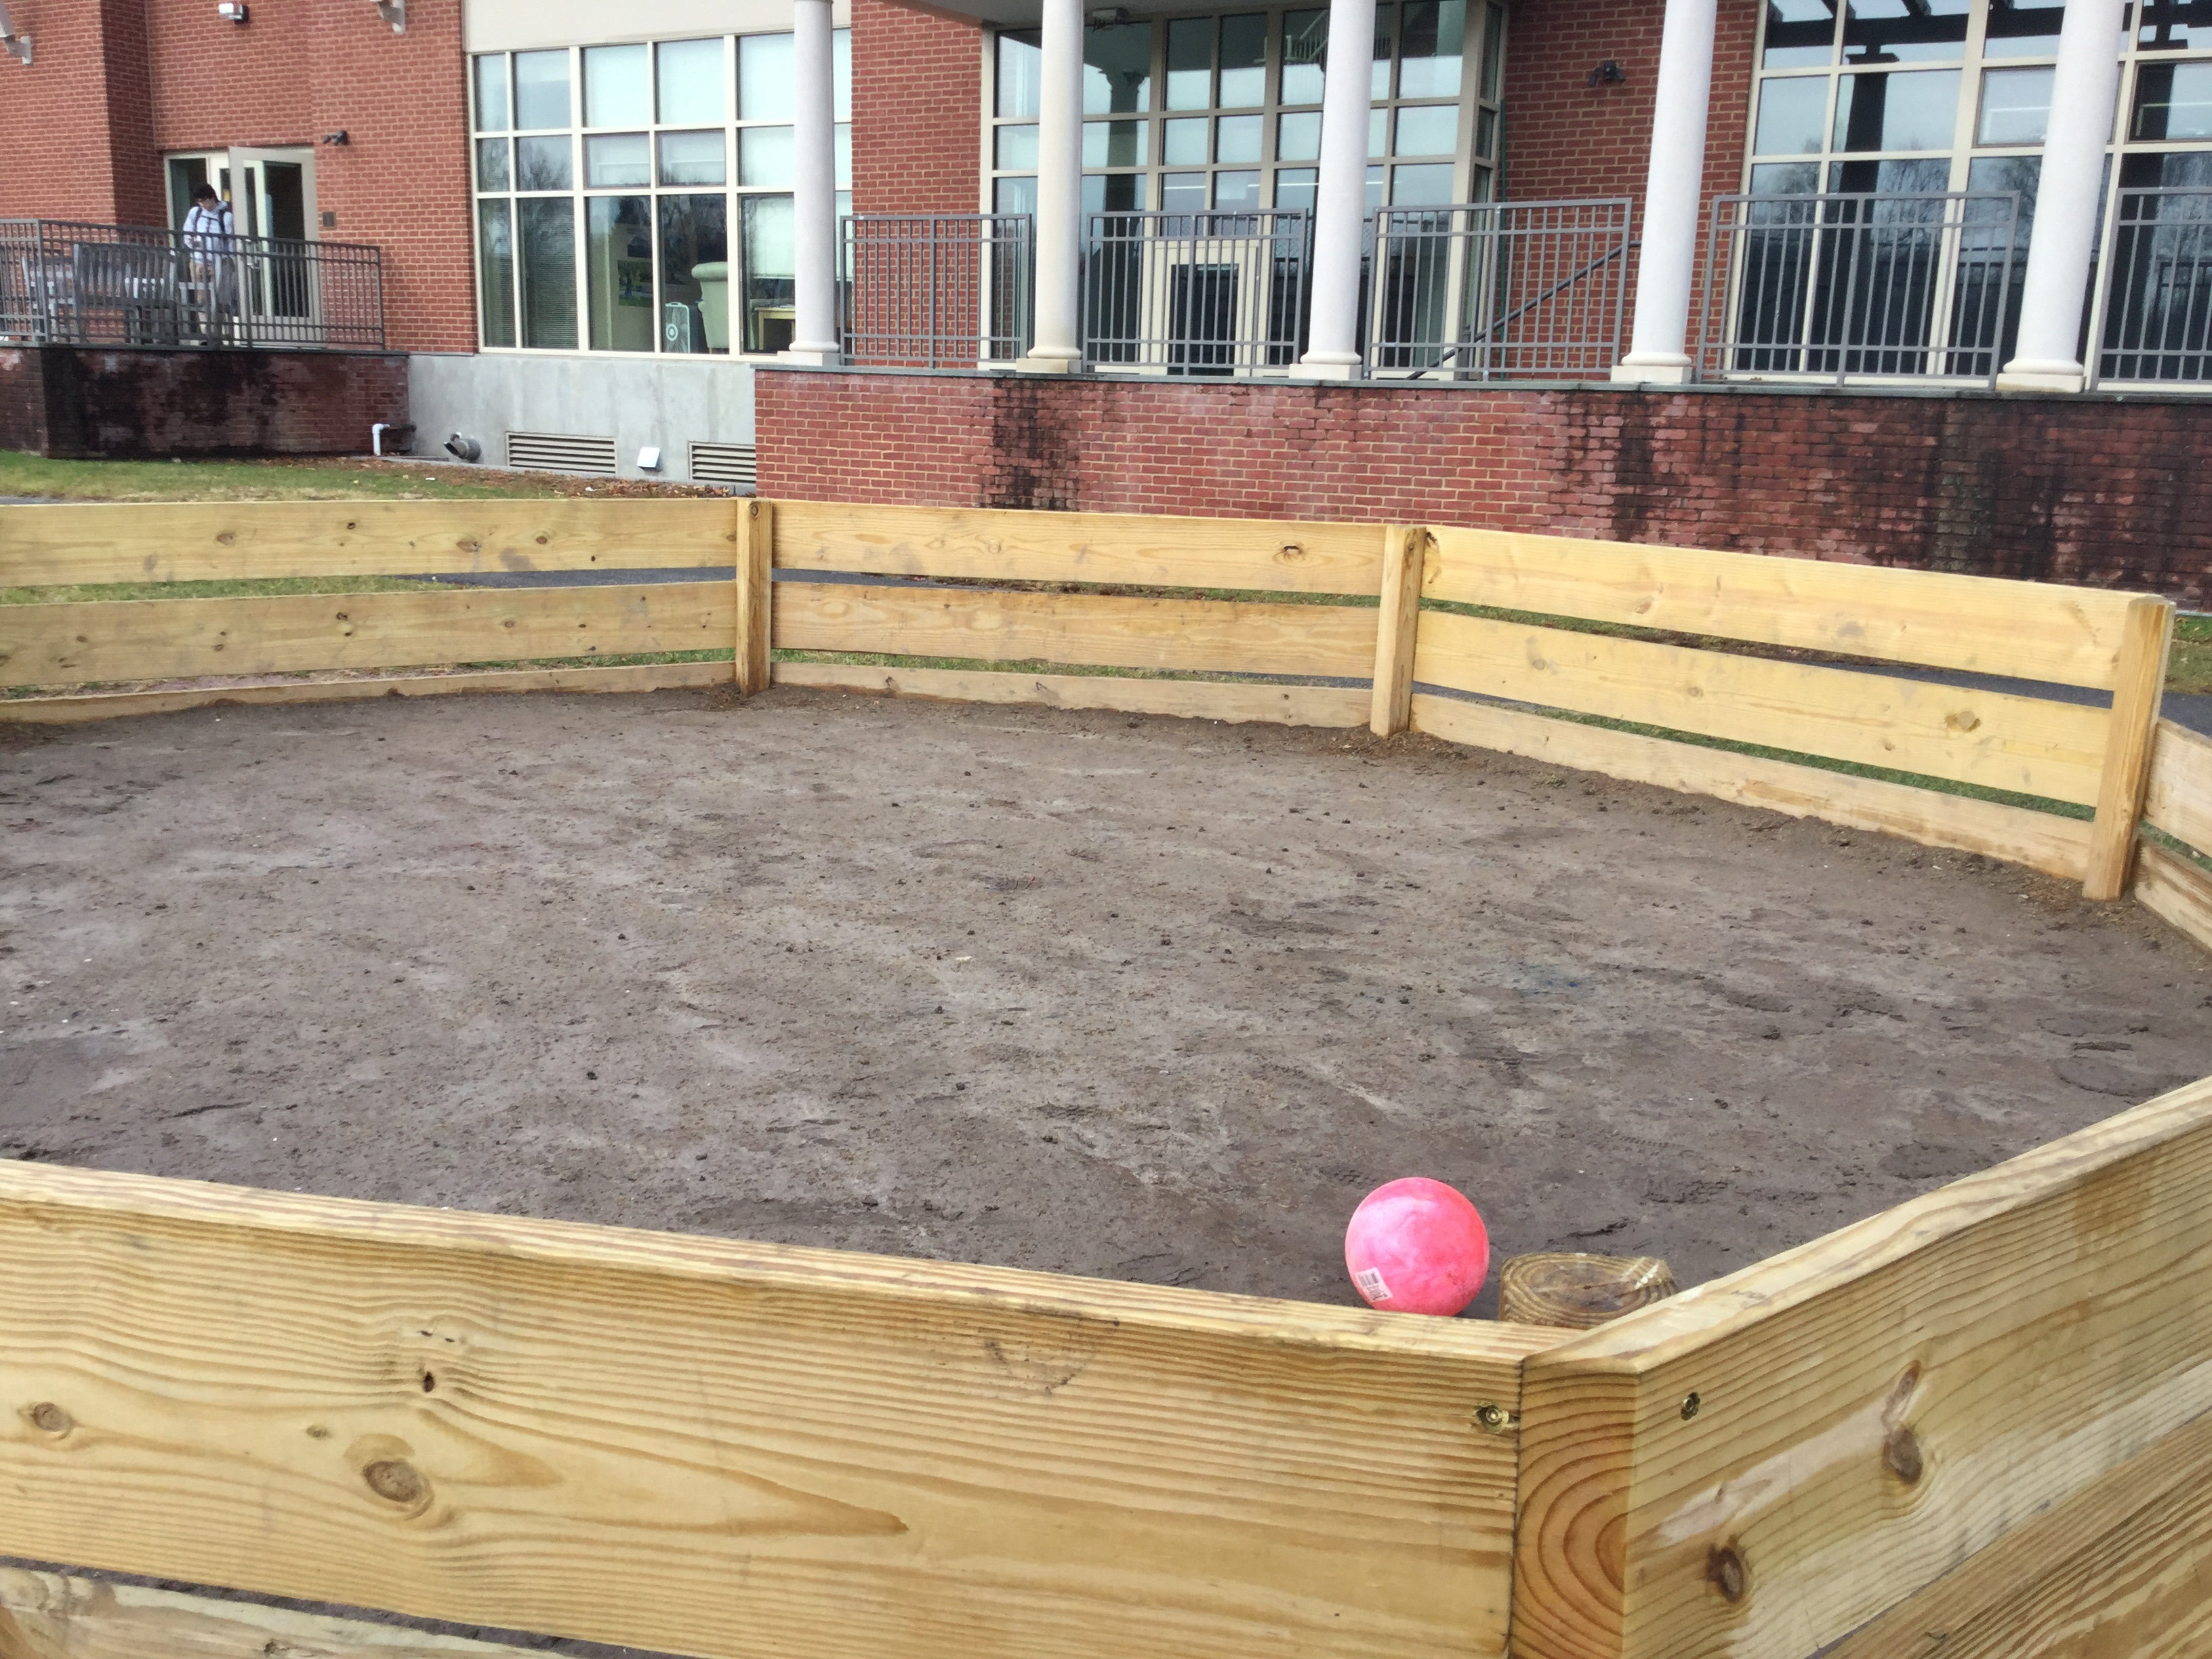 Brendan and his helpers constructed a Gaga Court for his school. The court is 20' in diameter and has seen a lot of use since its completion.